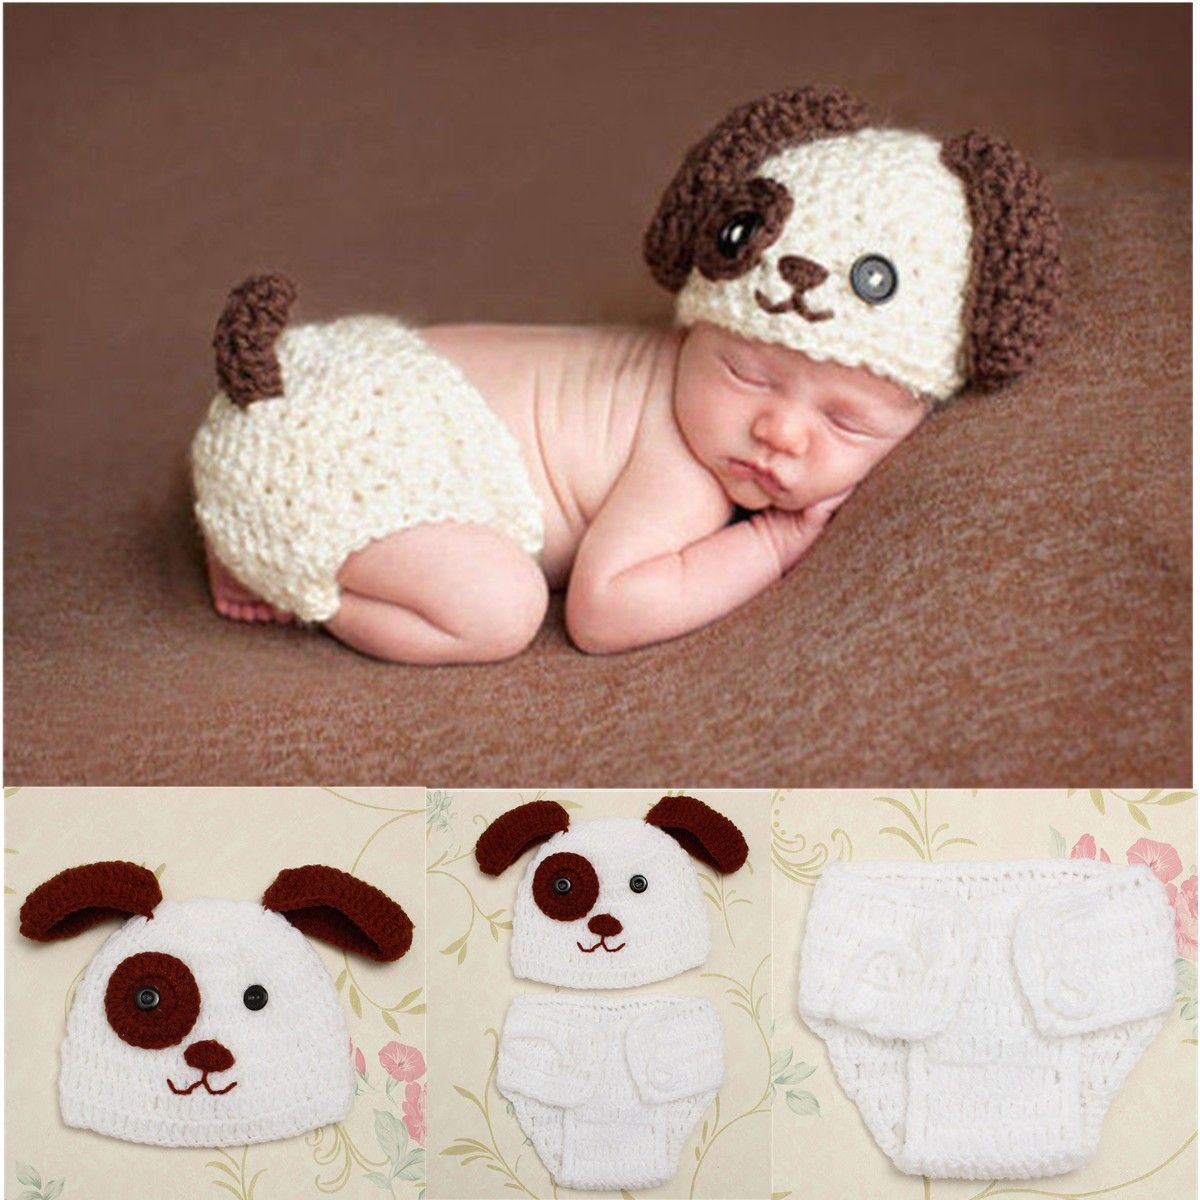 83489cfa2ad2 Newborn Baby Boys Crochet Knit Costume Puppy Dog Hat Photography ...